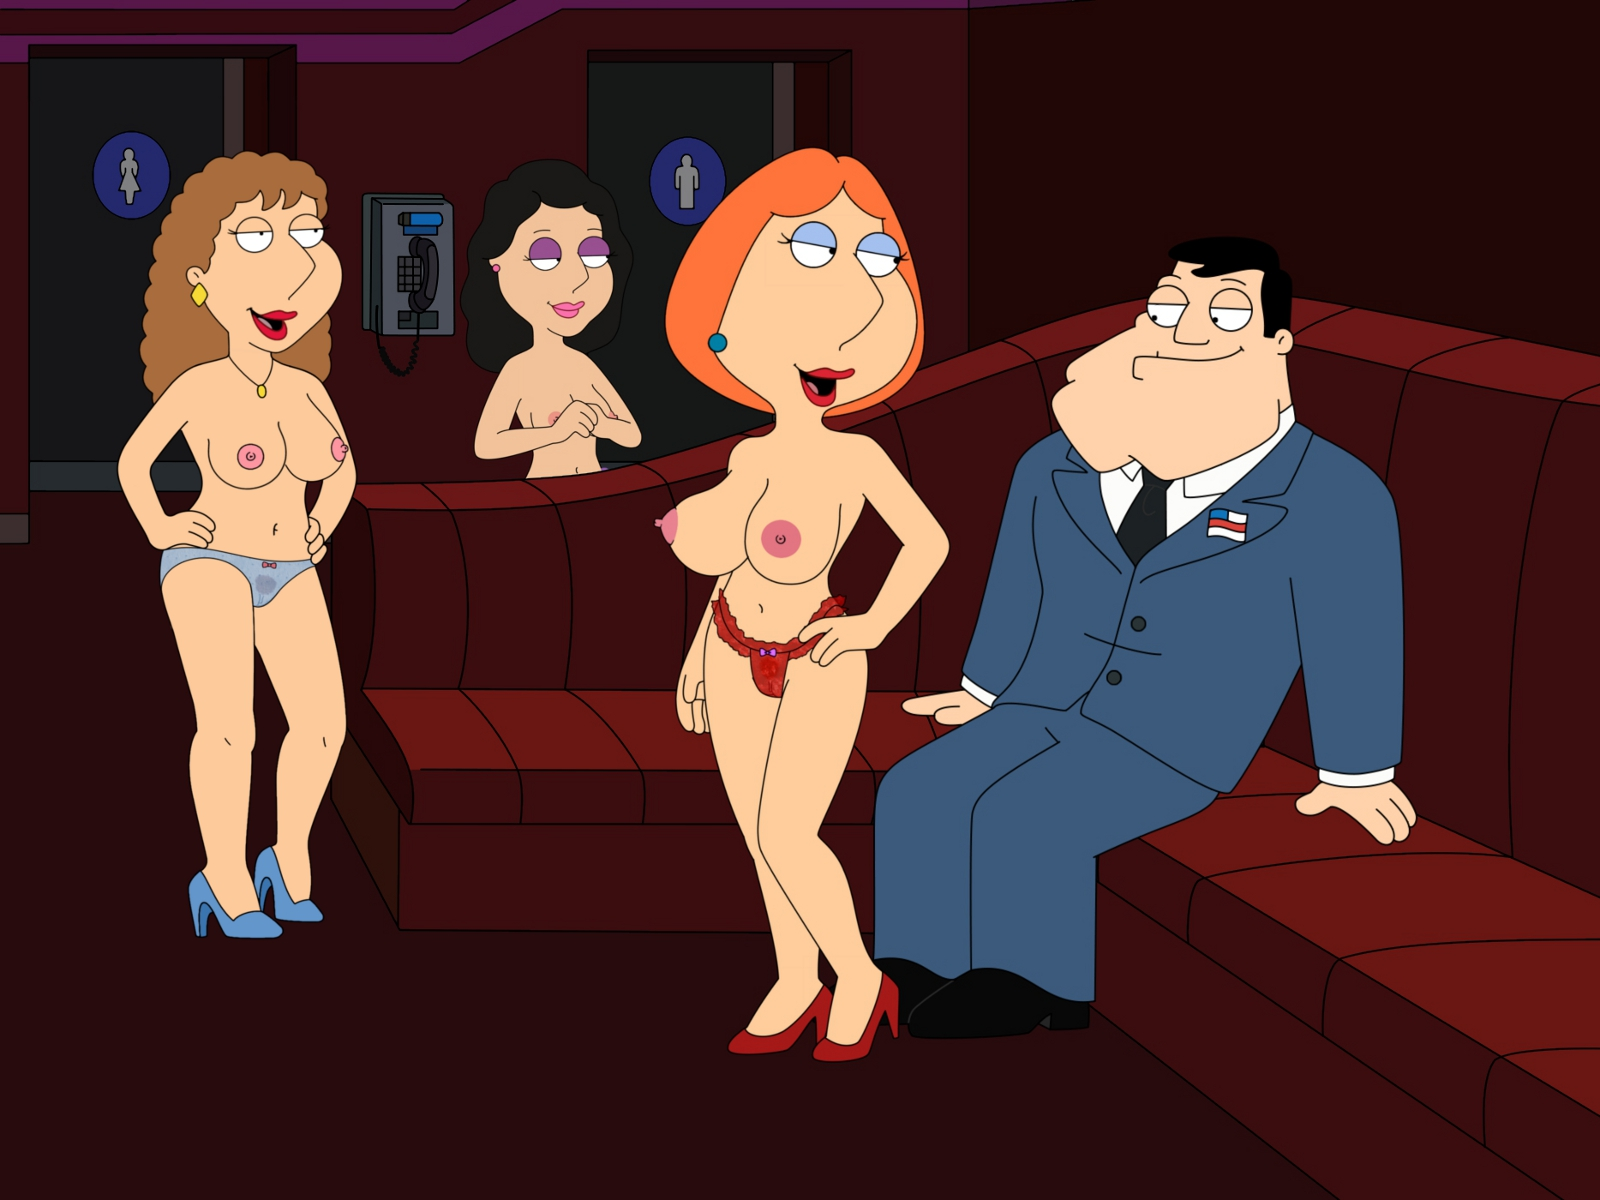 bonnie family guy naked